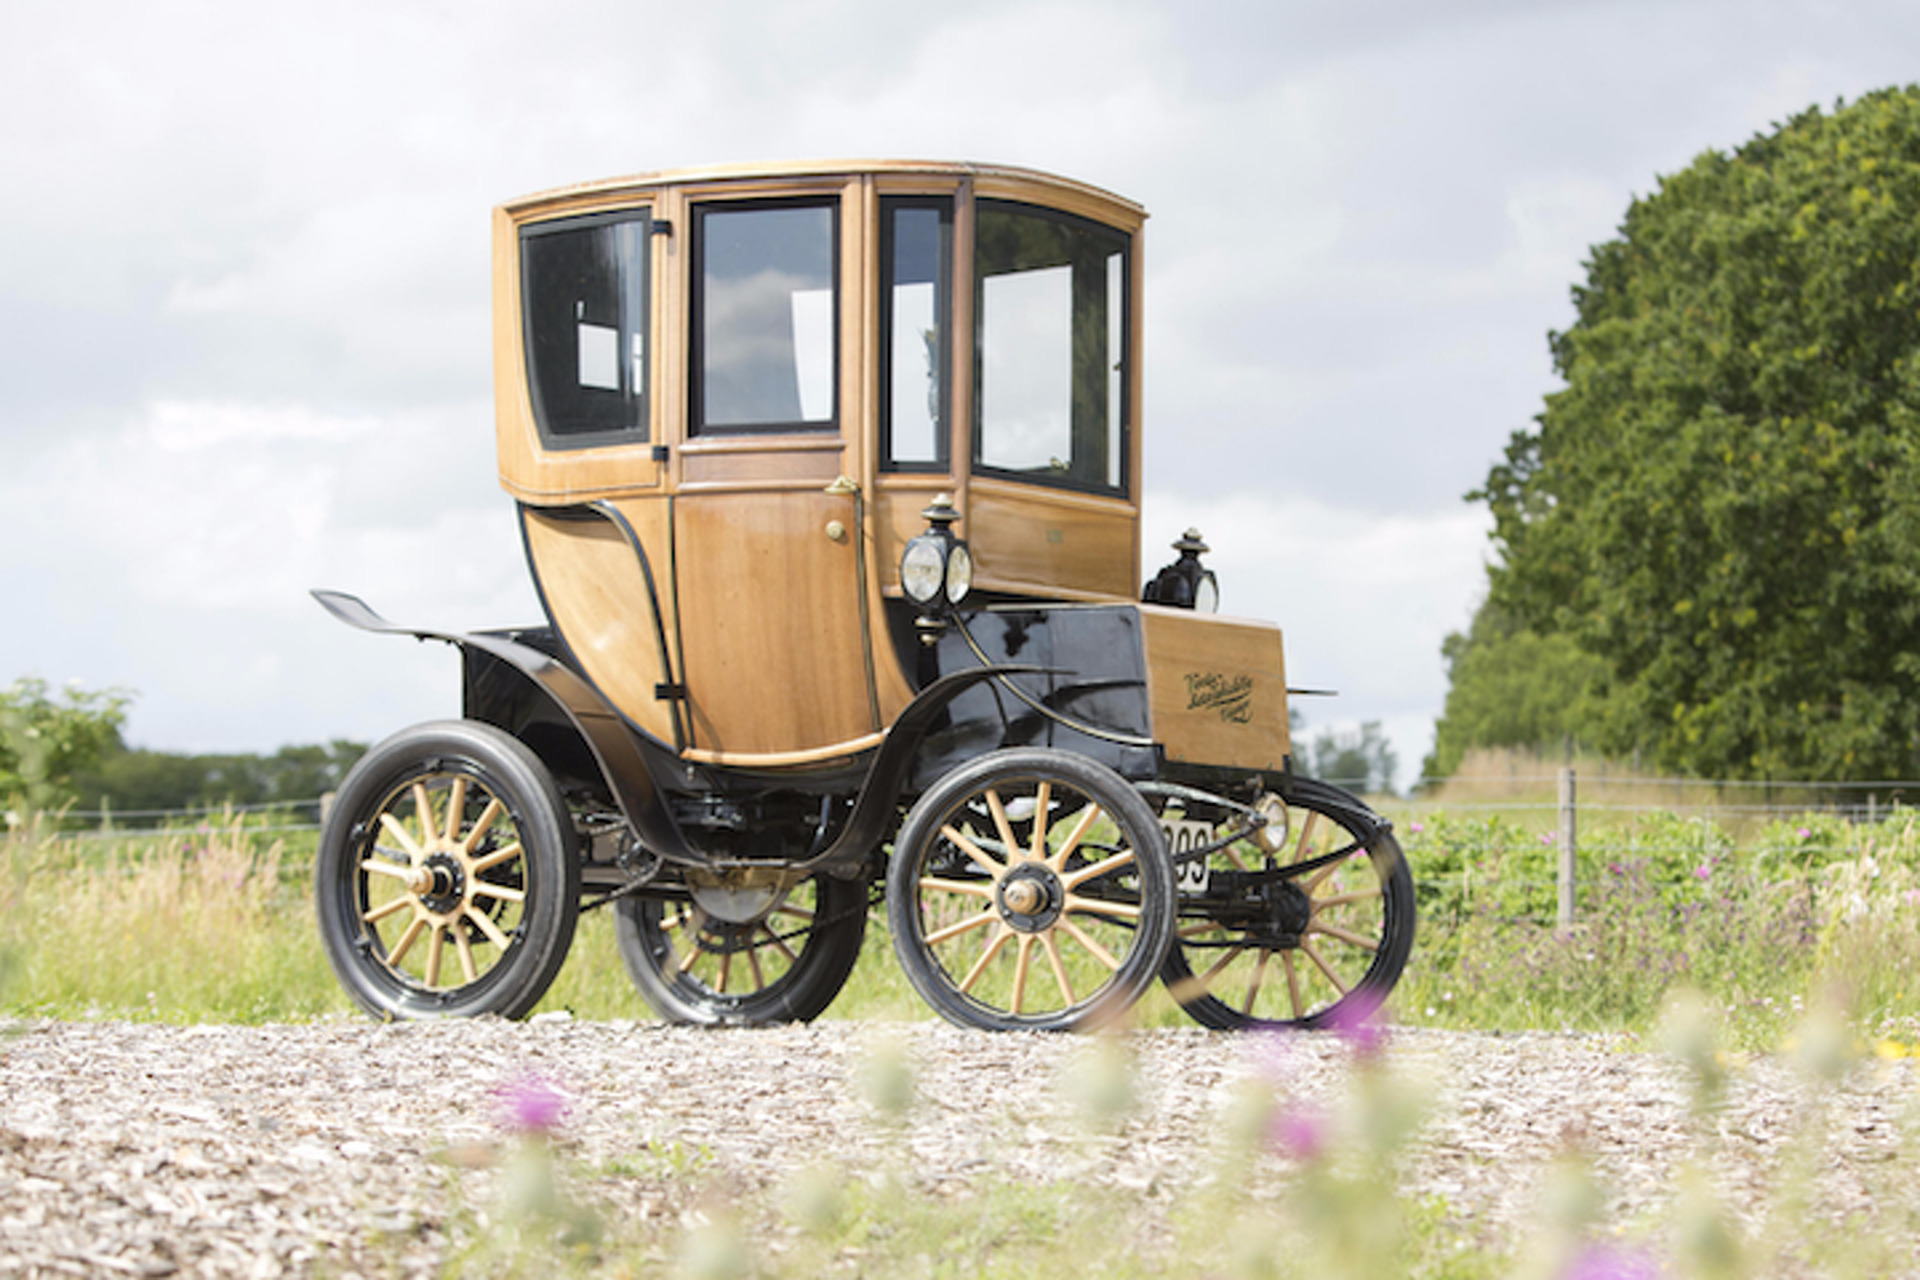 One of the World\'s Oldest Electric Vehicles Sold For $95,000 at Auction